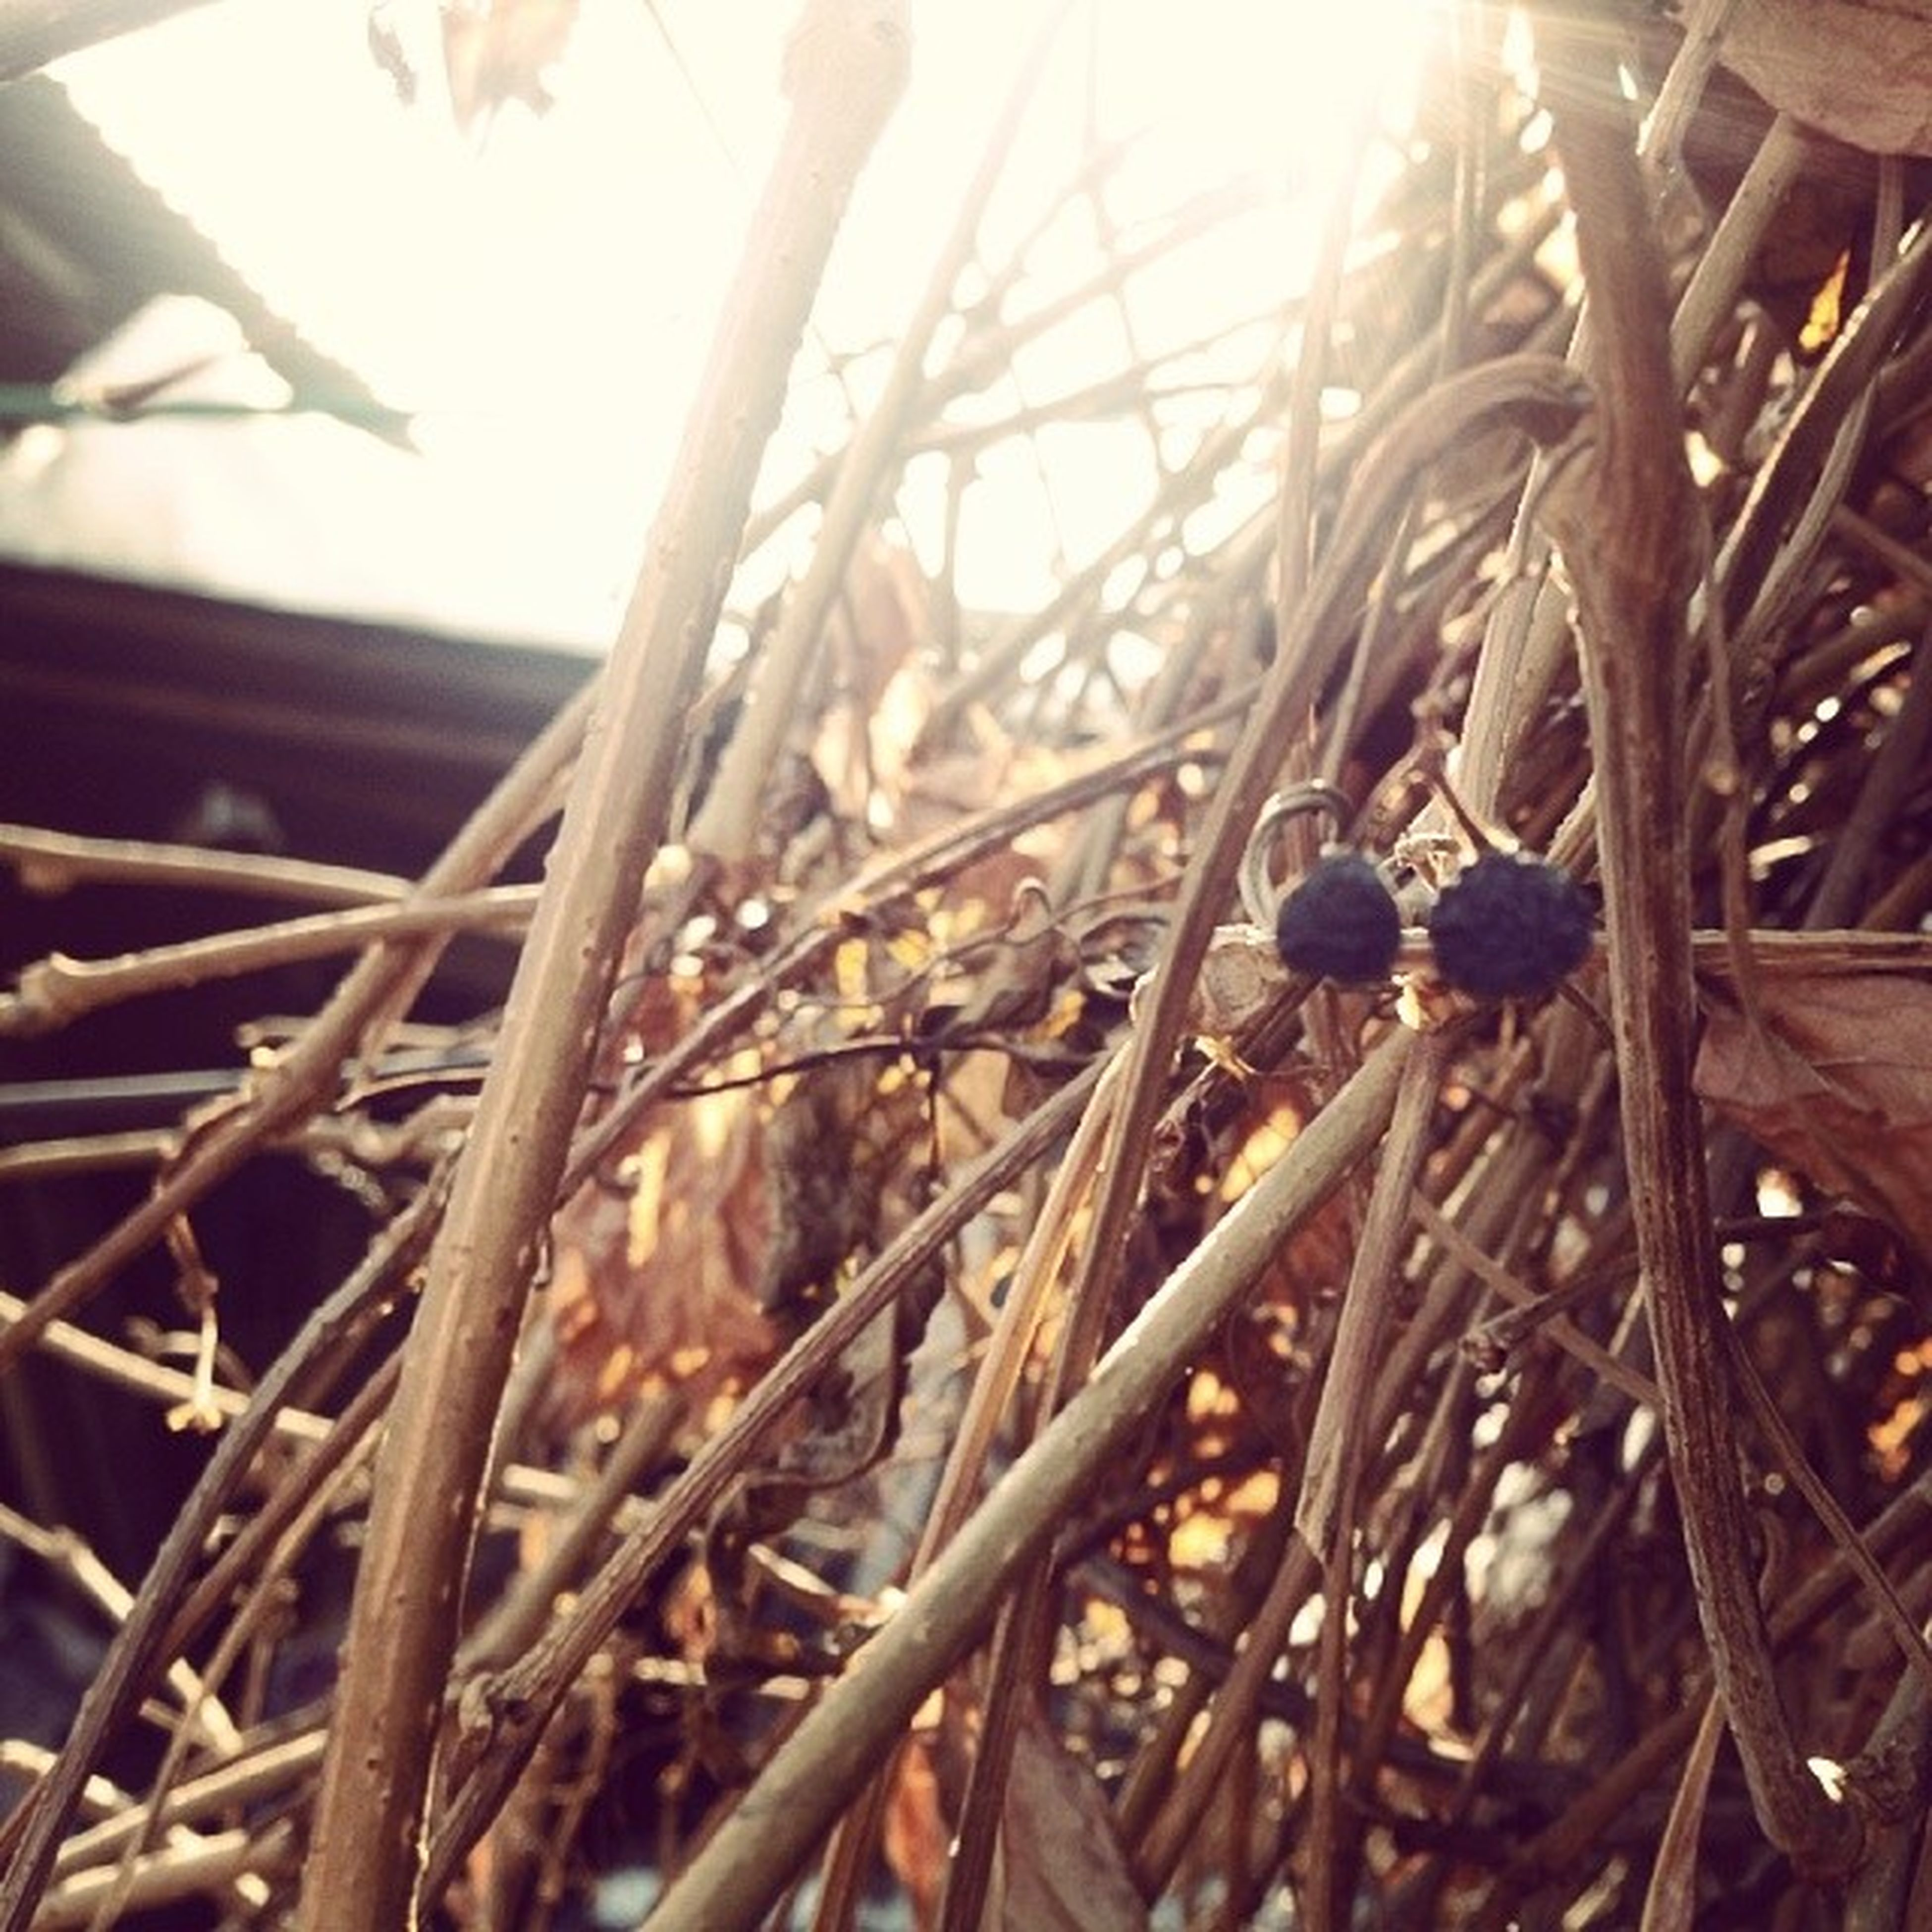 close-up, focus on foreground, sunlight, selective focus, metal, indoors, wood - material, day, hanging, no people, rope, abundance, large group of objects, stack, agriculture, fence, nature, metallic, still life